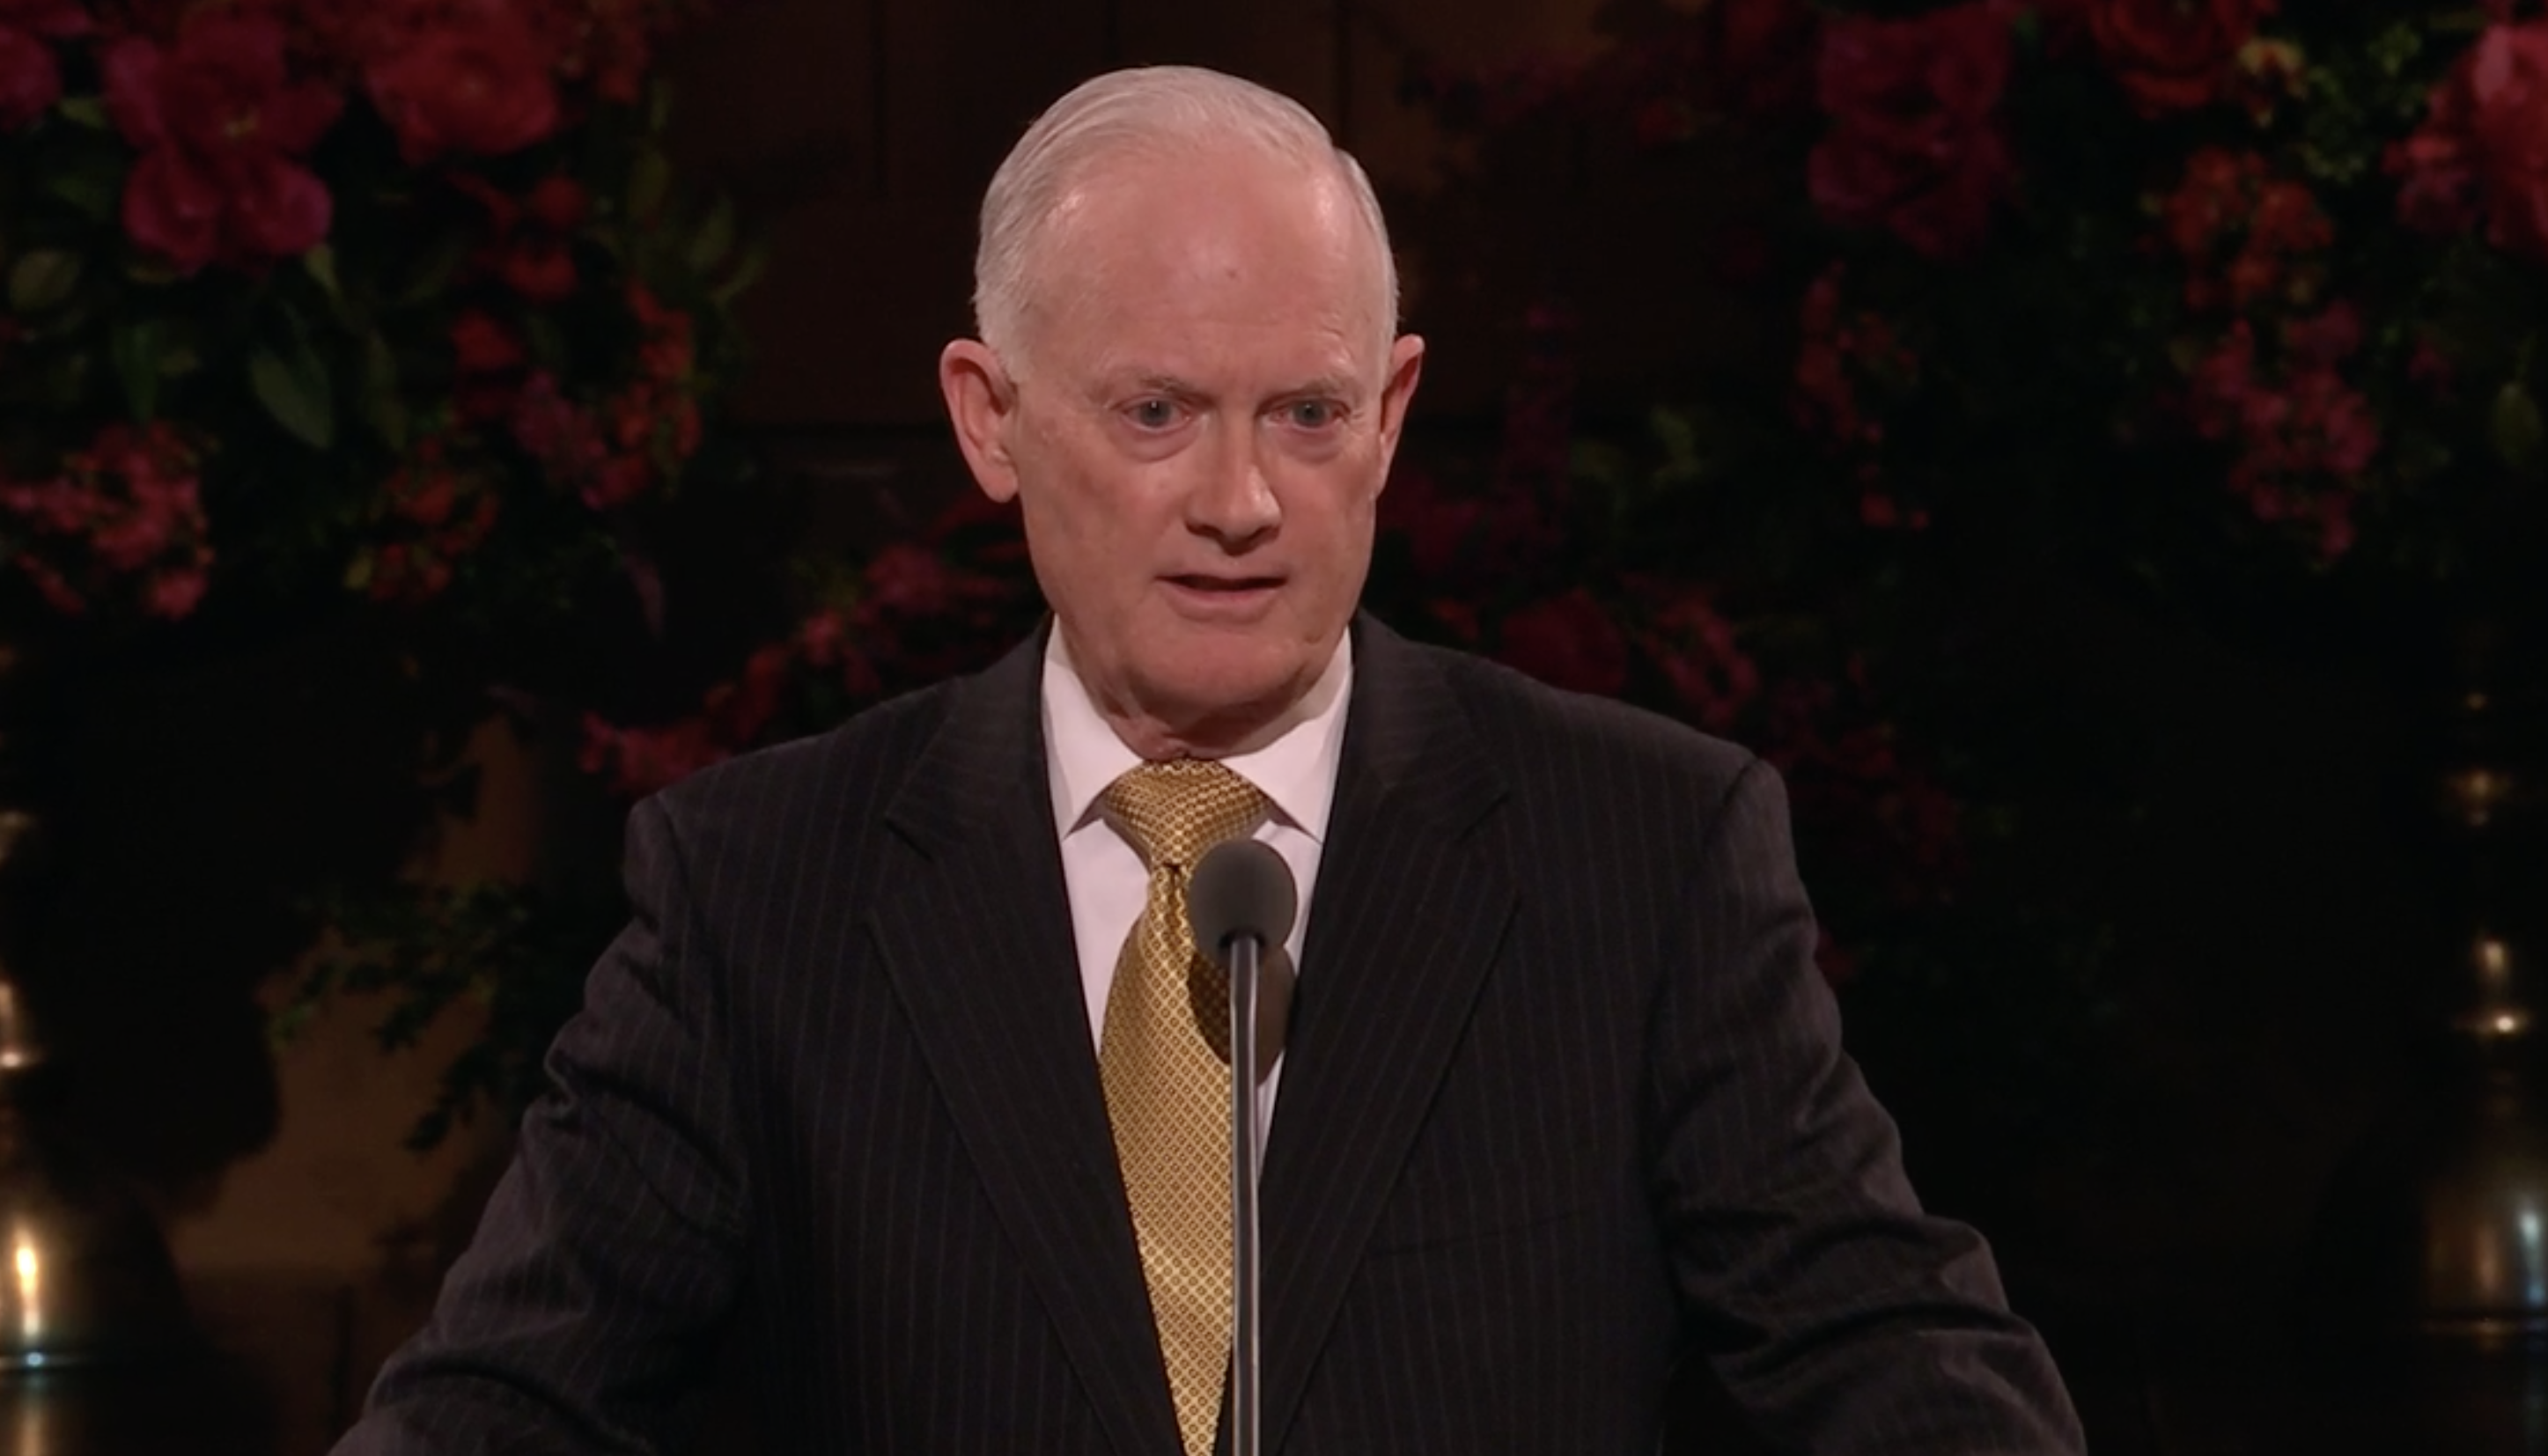 """Elder Kim B. Clark introduces Elder Ronald A. Rasband during """"An Evening with a General Authority"""" devotional, which was broadcast from the Tabernacle on Temple Square to Church Educational System employees, missionaries and their spouses on Feb. 8, 2019."""